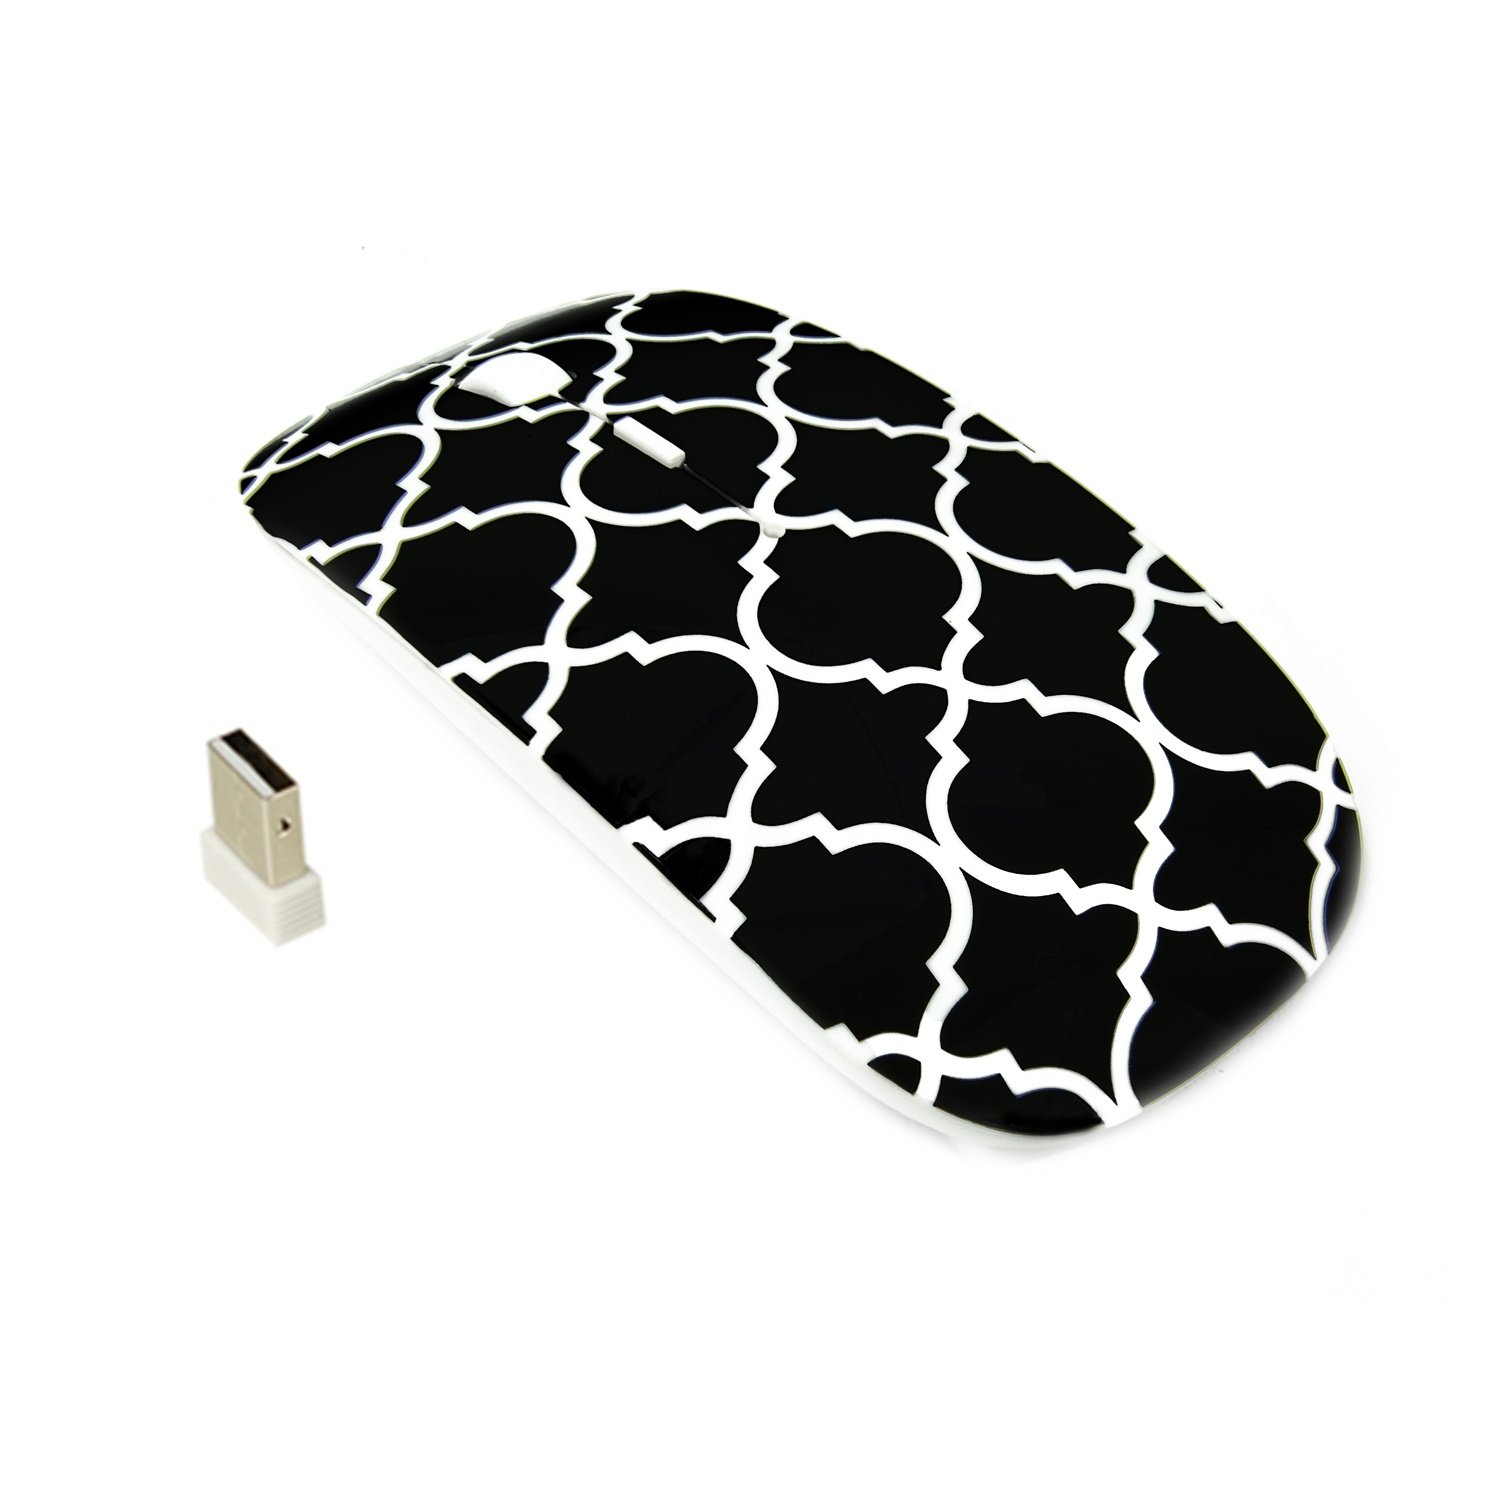 Amazon.com: TopCase Quatrefoil/Moroccan Trellis Series Black USB Optical Wireless Mouse for MacBook (pro, air) and All Laptop + TopCase Designed Chevron ...